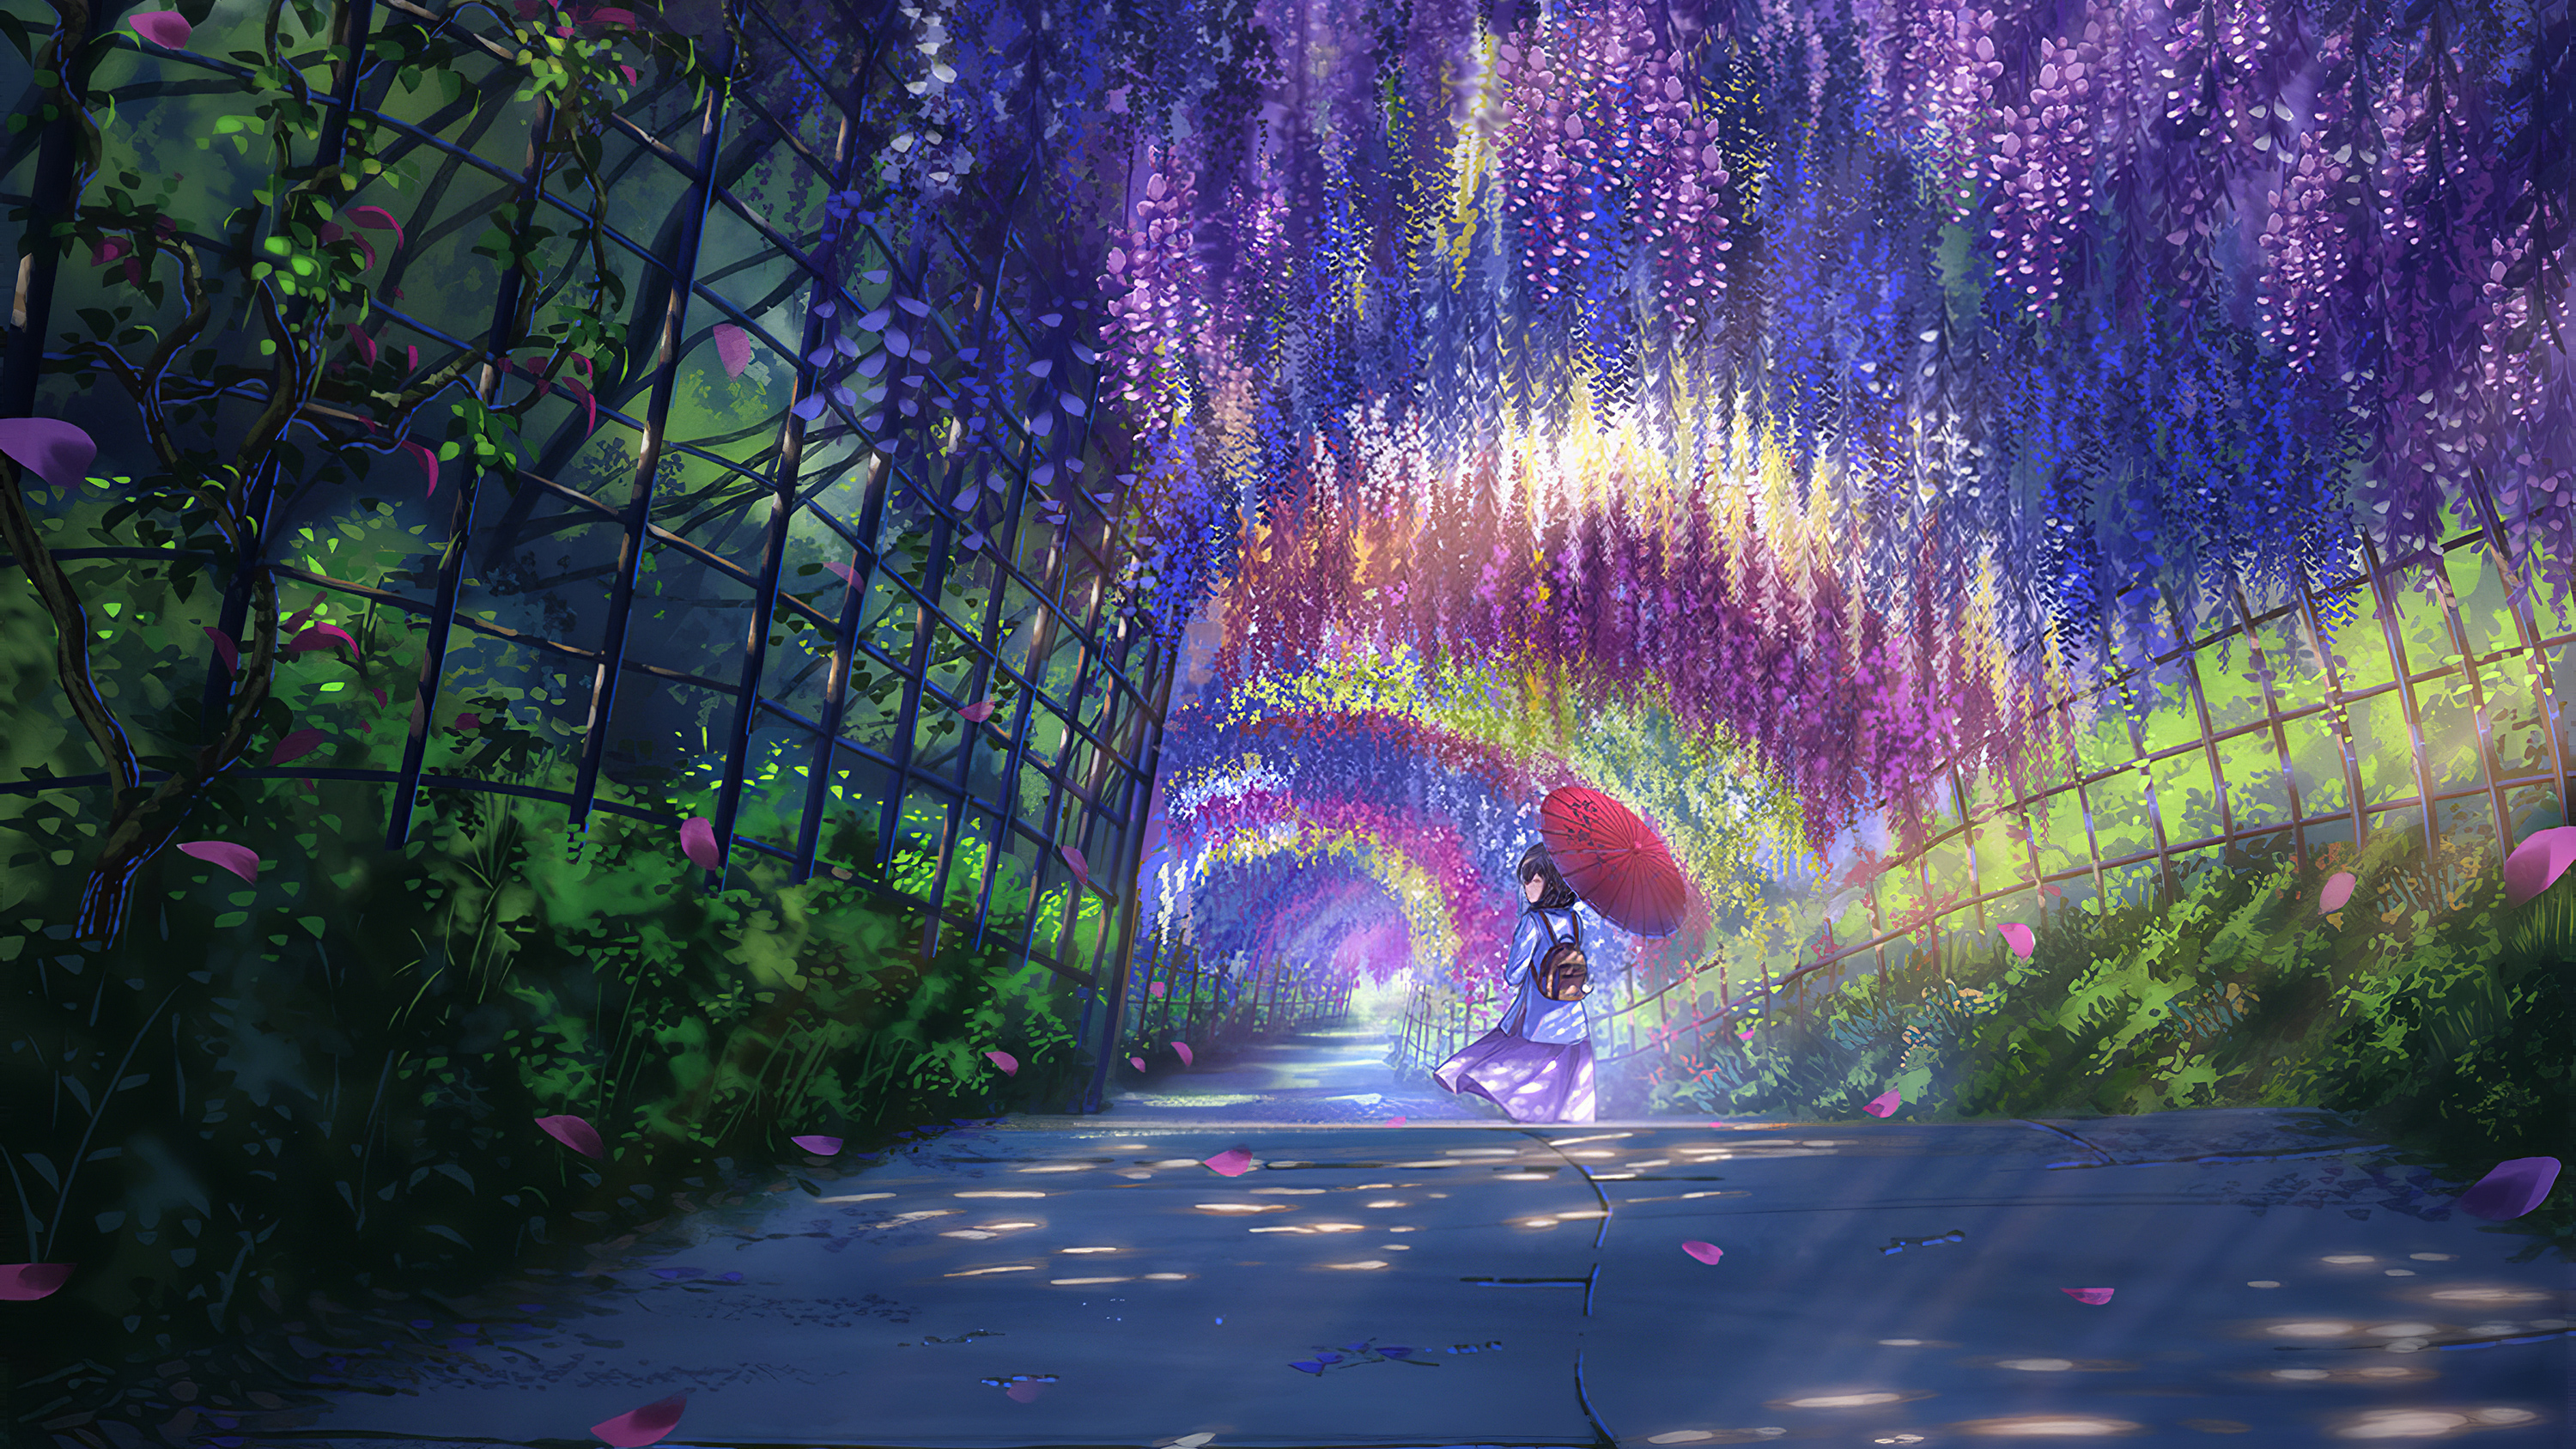 Anime Girl In Wisteria Garden Hd Wallpaper Background Image 3000x1687 Id 1046312 Wallpaper Abyss